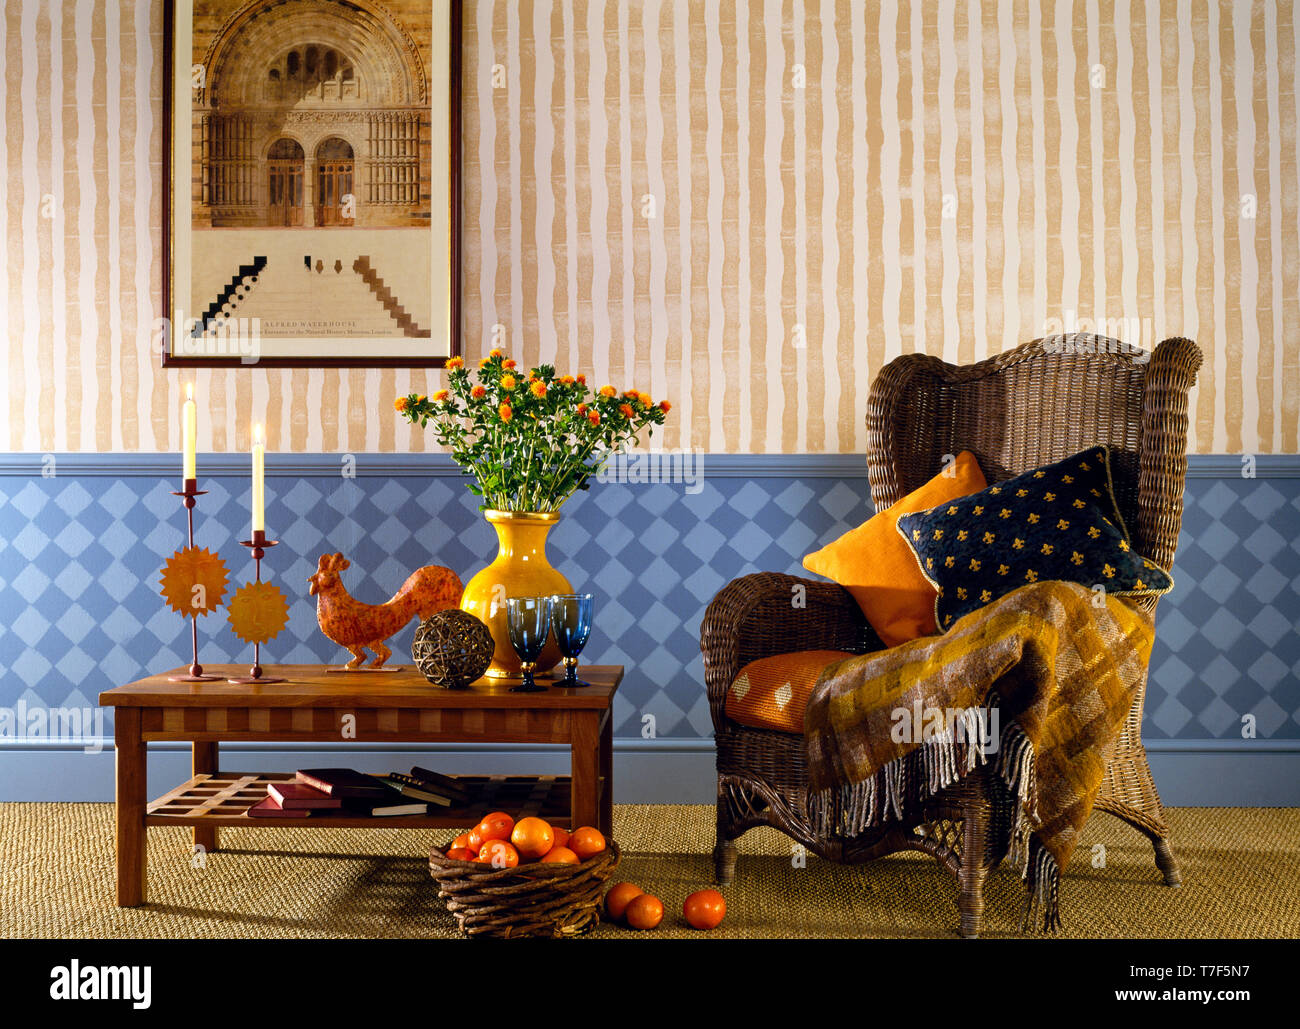 Room with bamboo striped effect wall and chequerboard dado - Stock Image